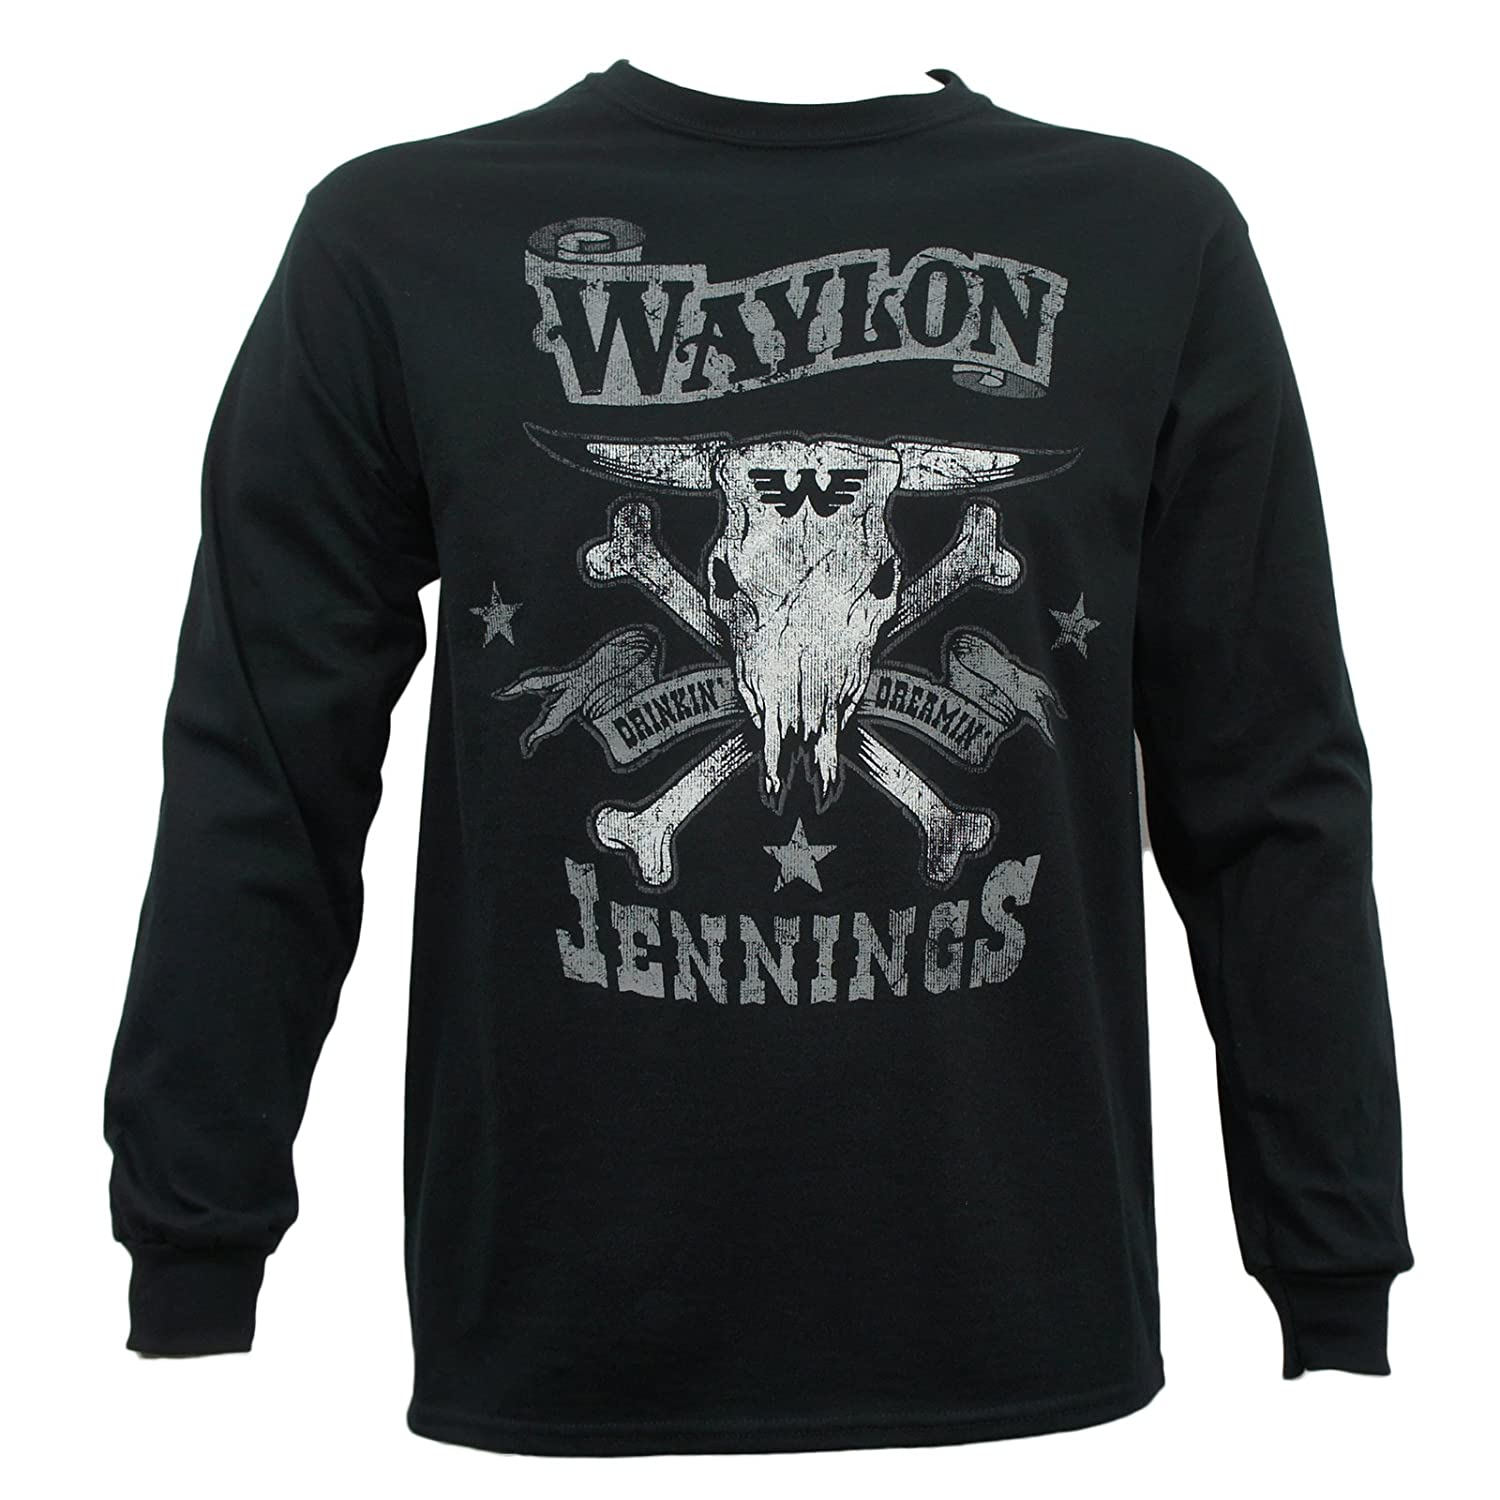 3e7b3195 Amazon.com: Waylon Jennings Men's Drinkin and Dreamin Long Sleeve T-Shirt:  Clothing